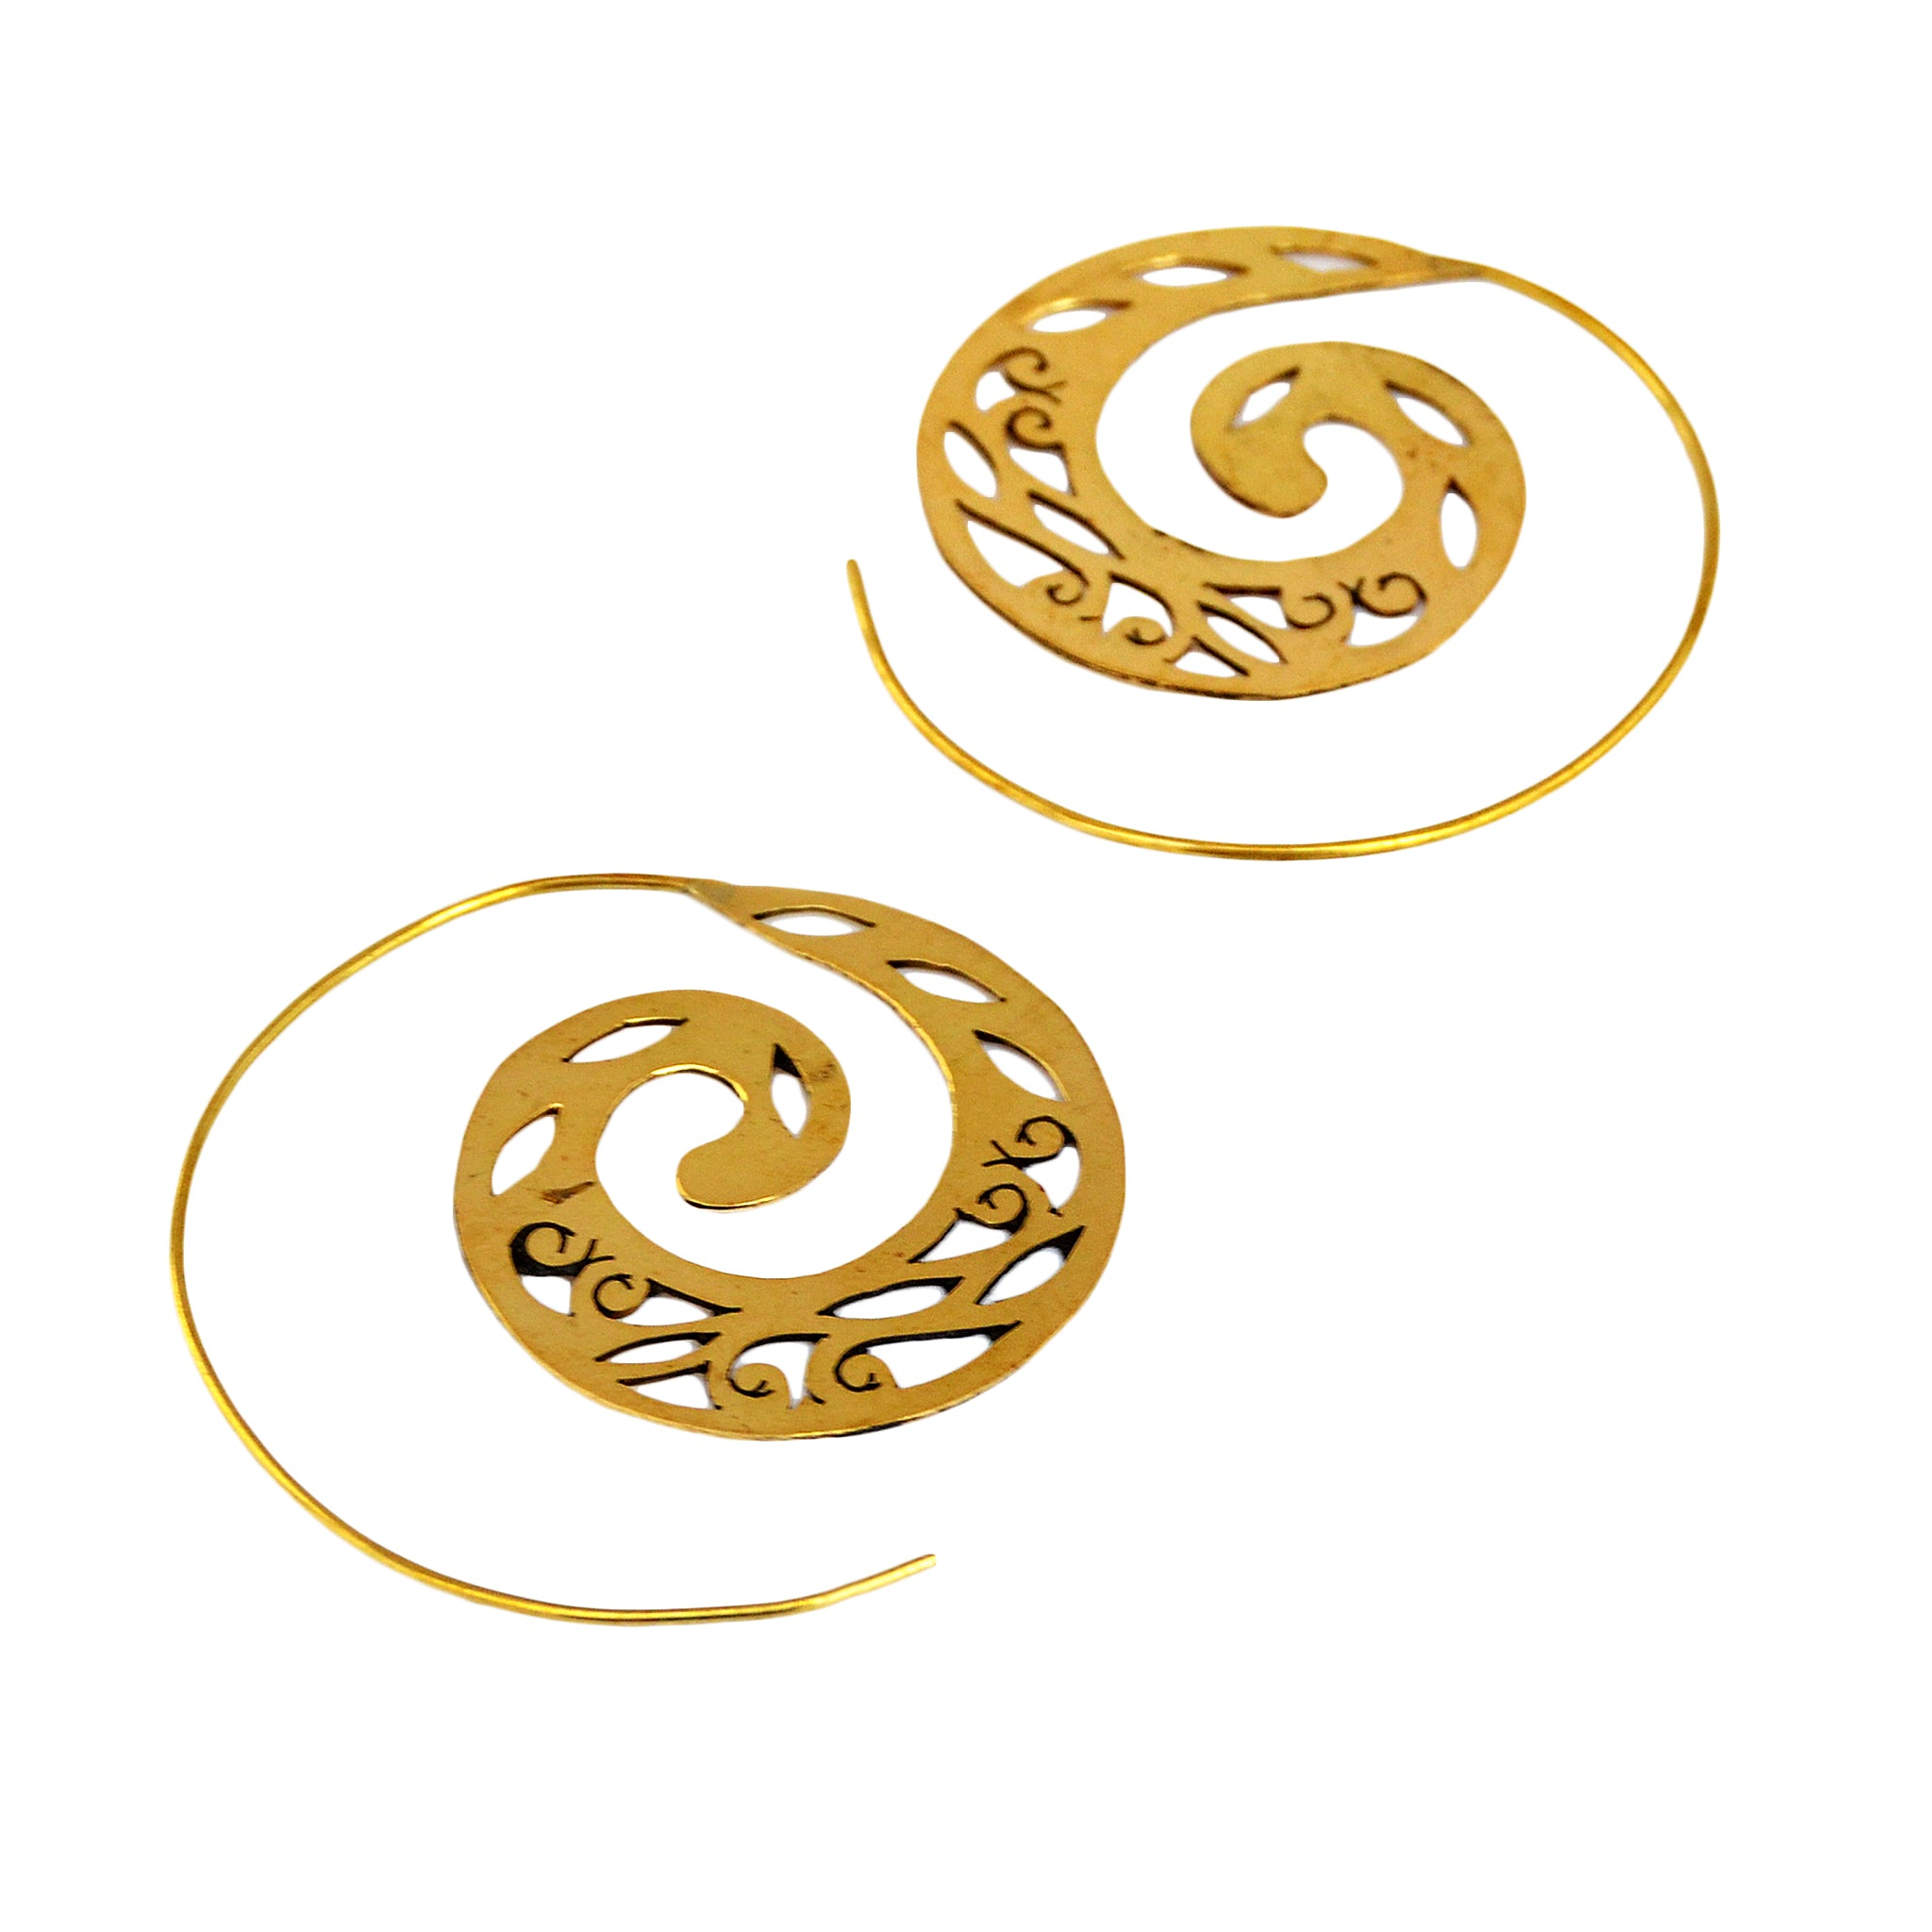 Brass sawed tribal spiral earrings